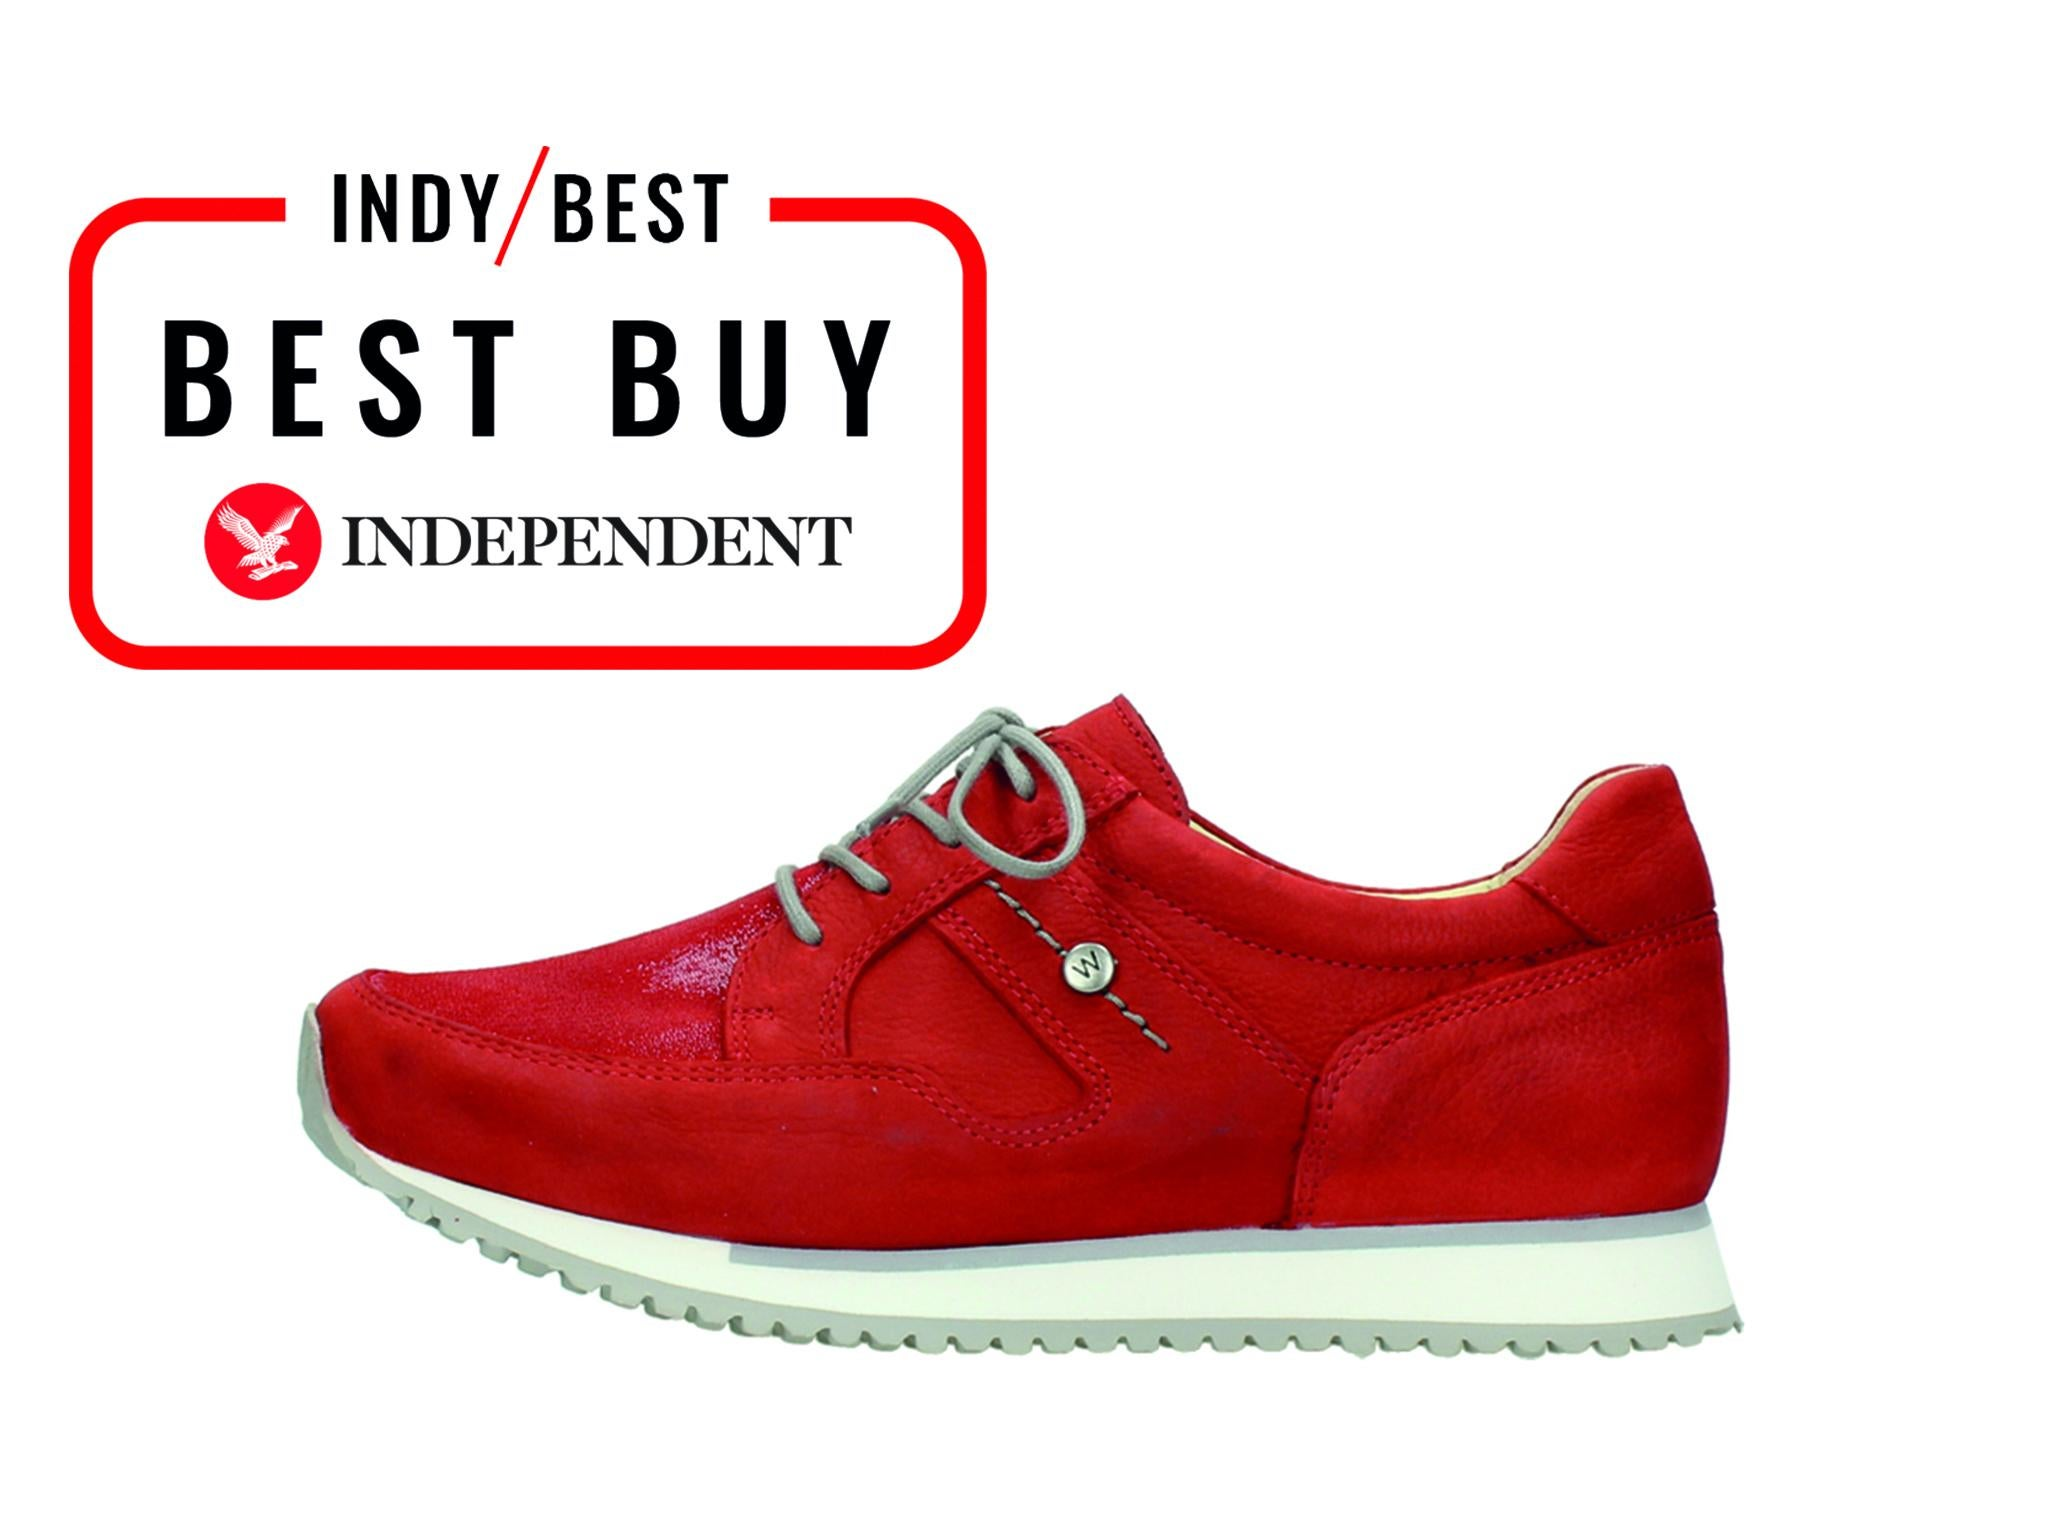 10 Best Orthopaedic Shoes The Independent